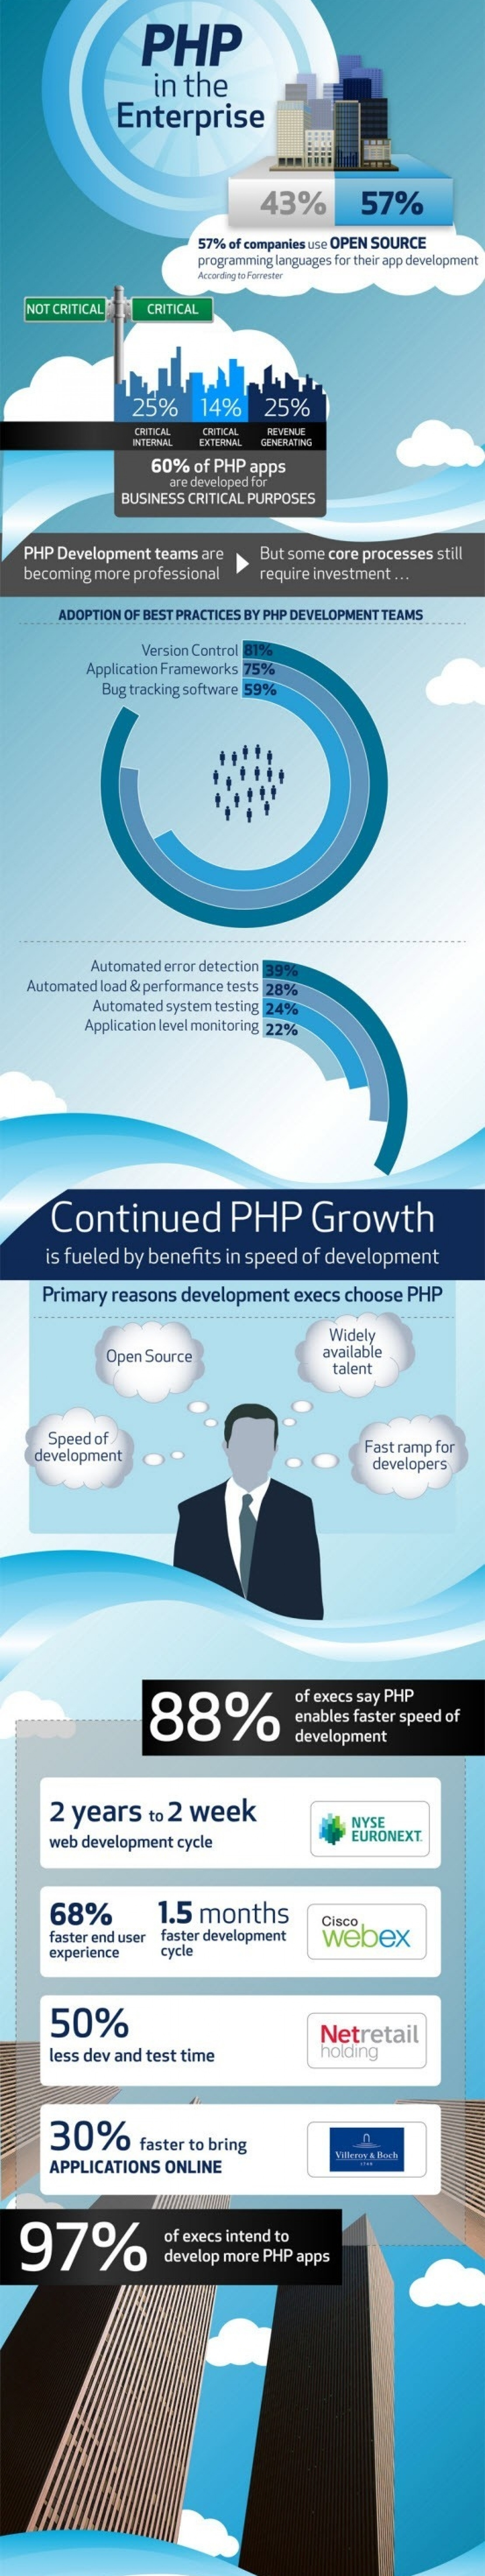 PHP is the Enterprise Infographic